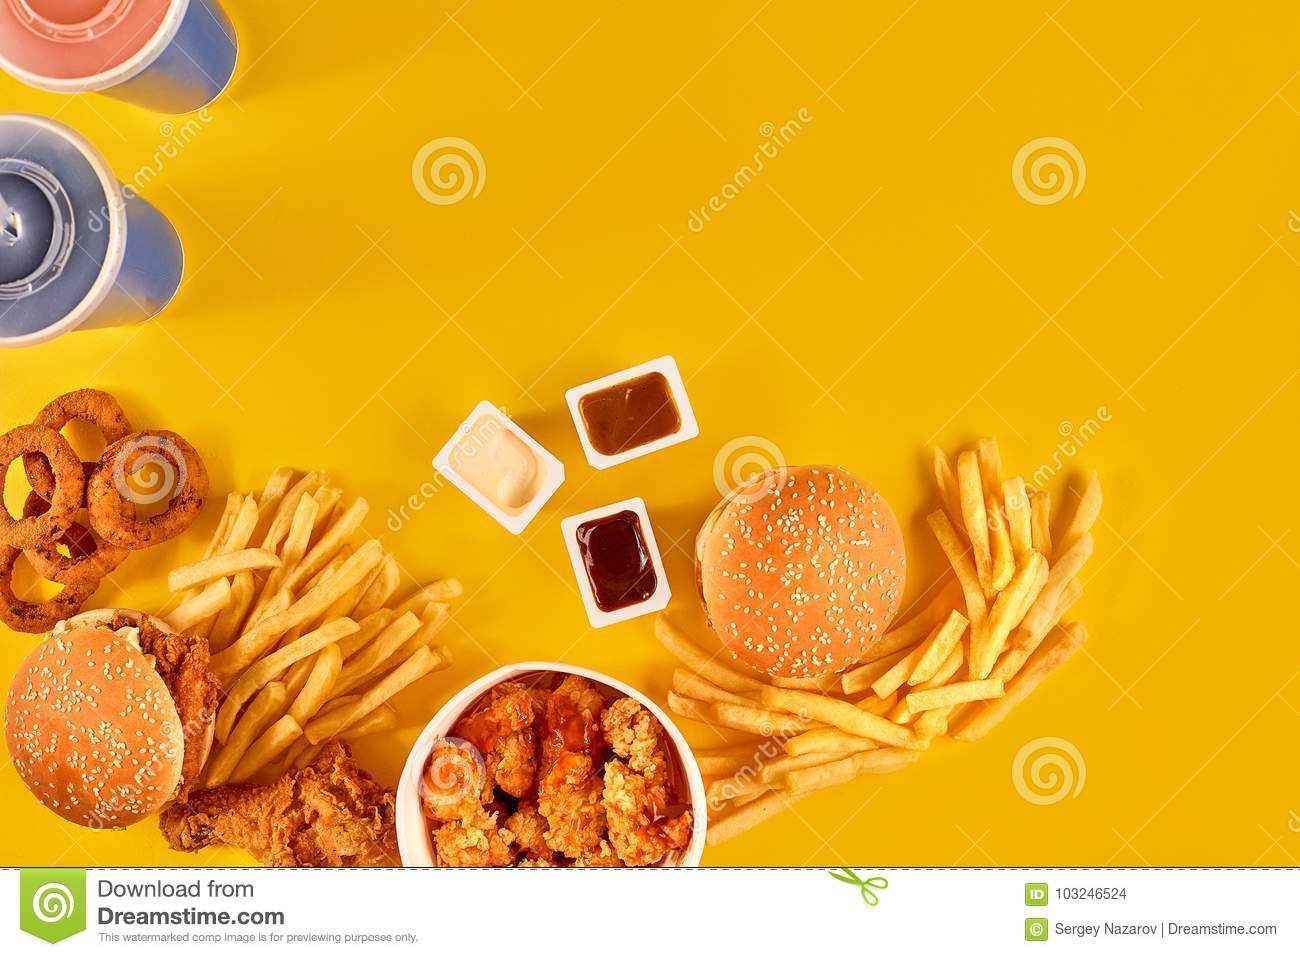 Take Away Composition French Fries Hamburger Mayonnaise And Ketchup Sauces On Yellow Background Menu Or Receipt Top View Copy Space